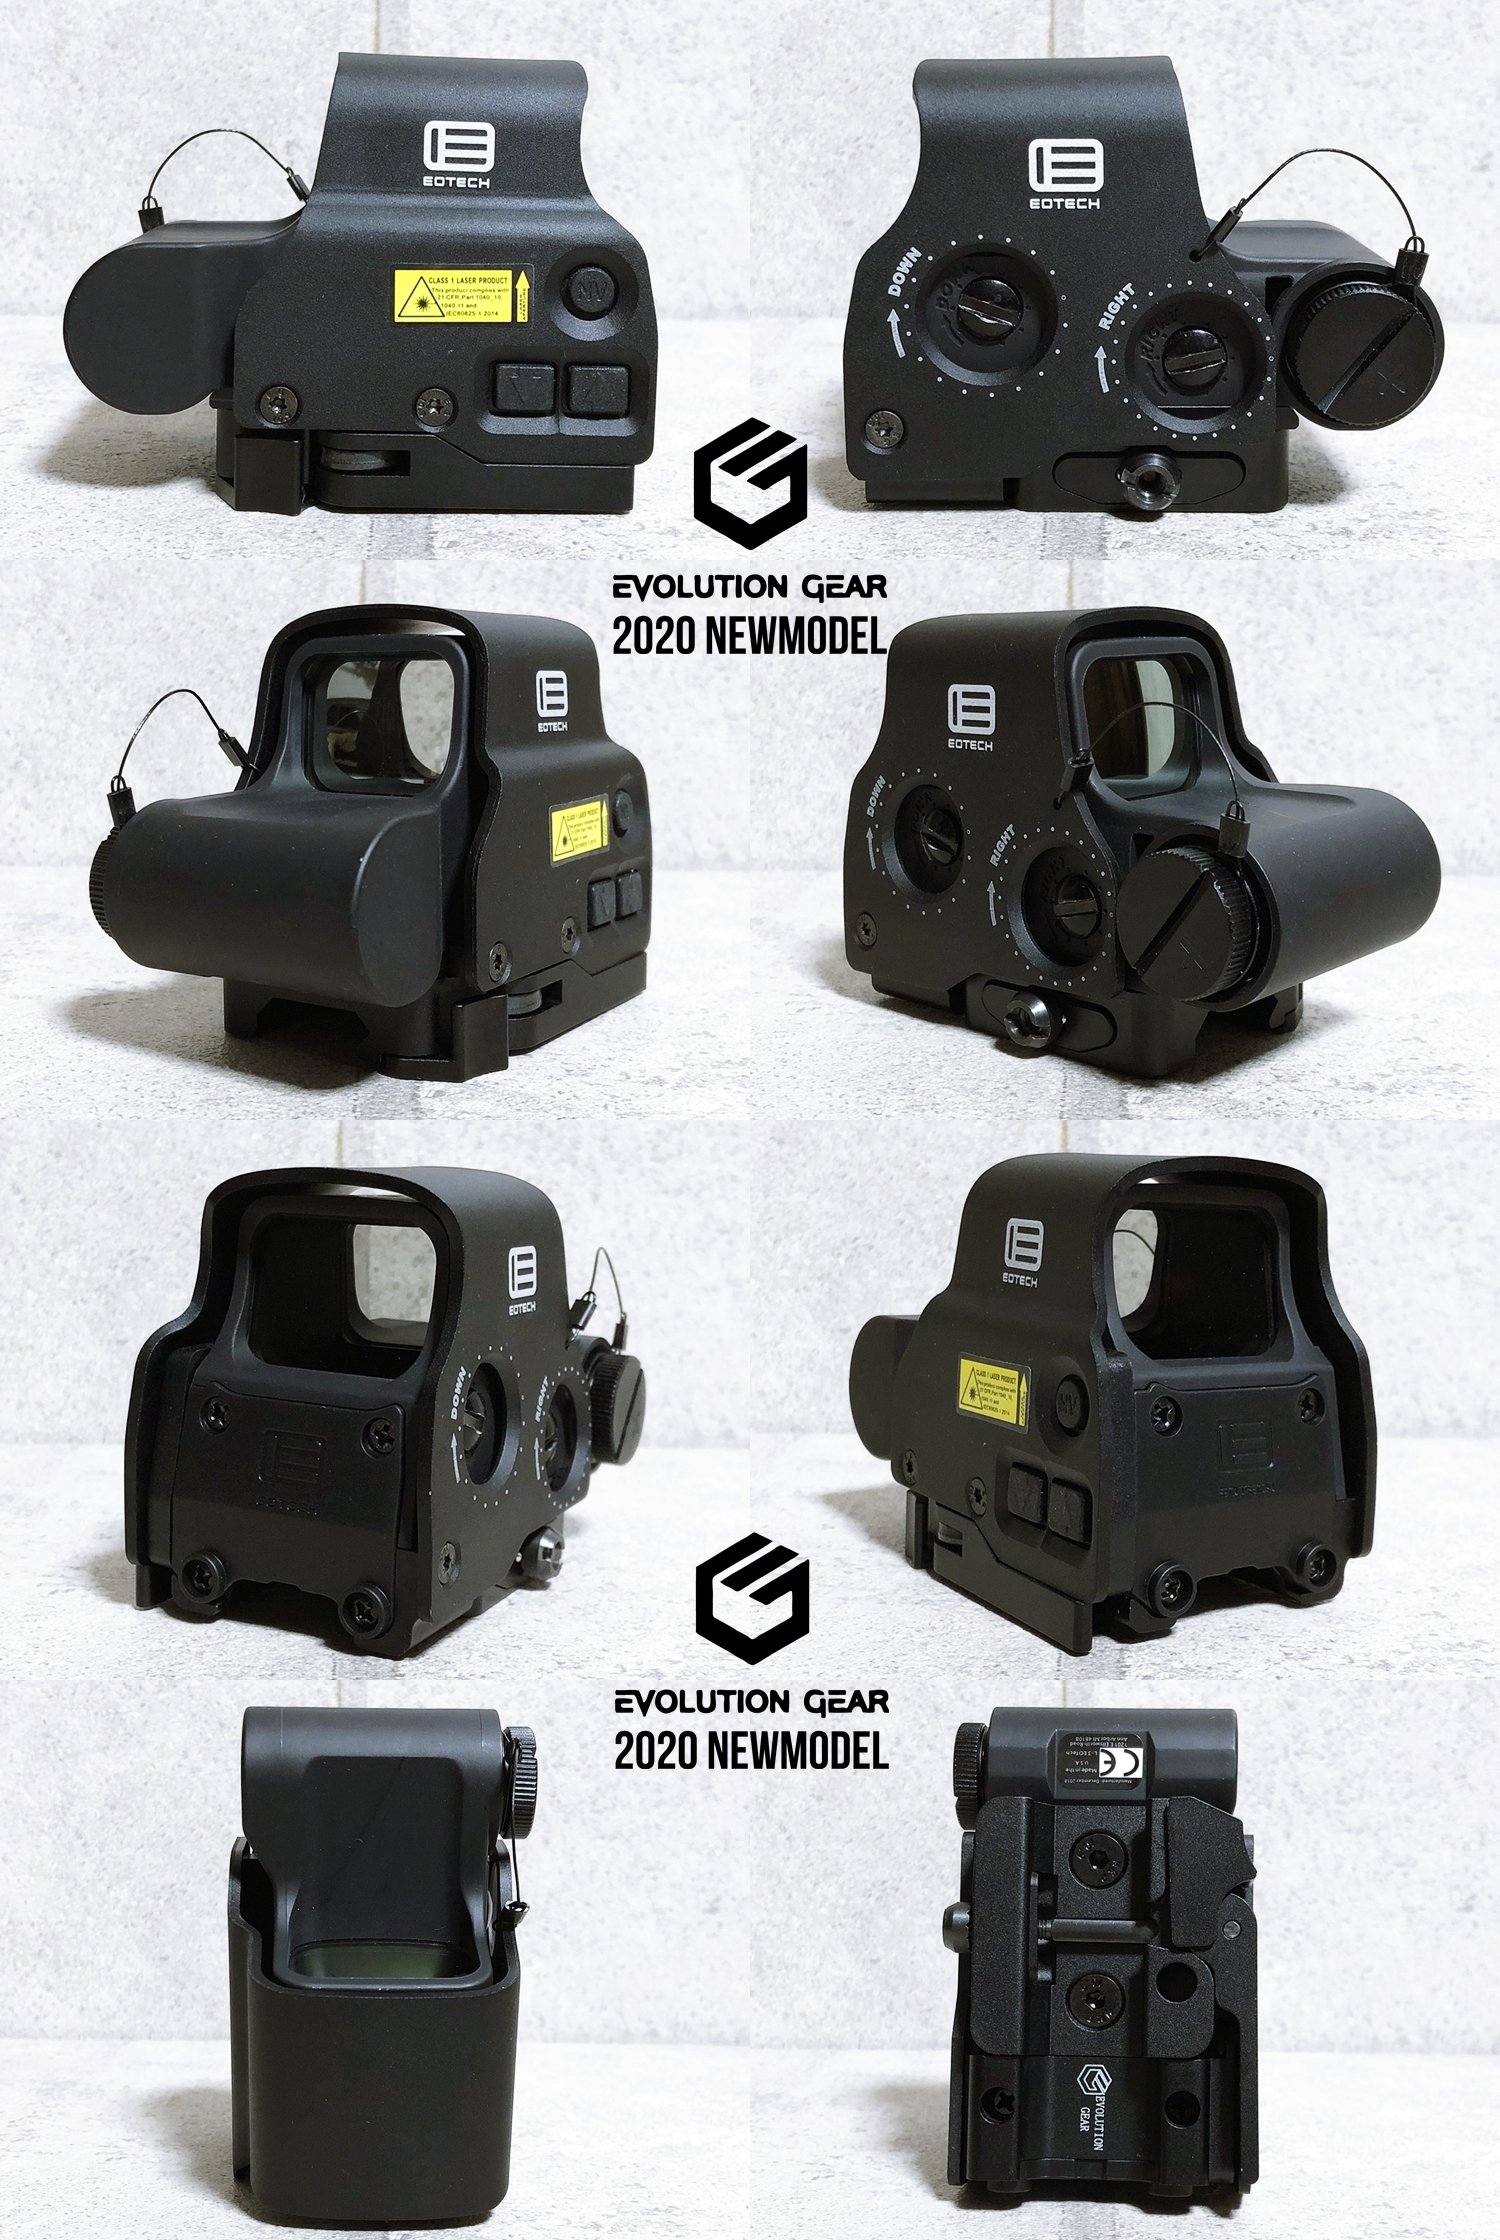 8 EVOLUTION GEAR 2020 改良版 EOTech EXPS3-0 NEW!! 最新リアルバージョンの改良点を徹底検証だ!! 新エボギア & 旧エボギア & 実物 イオテック ホロサイト!! 開封 比較 検証 取付 レビュー!!